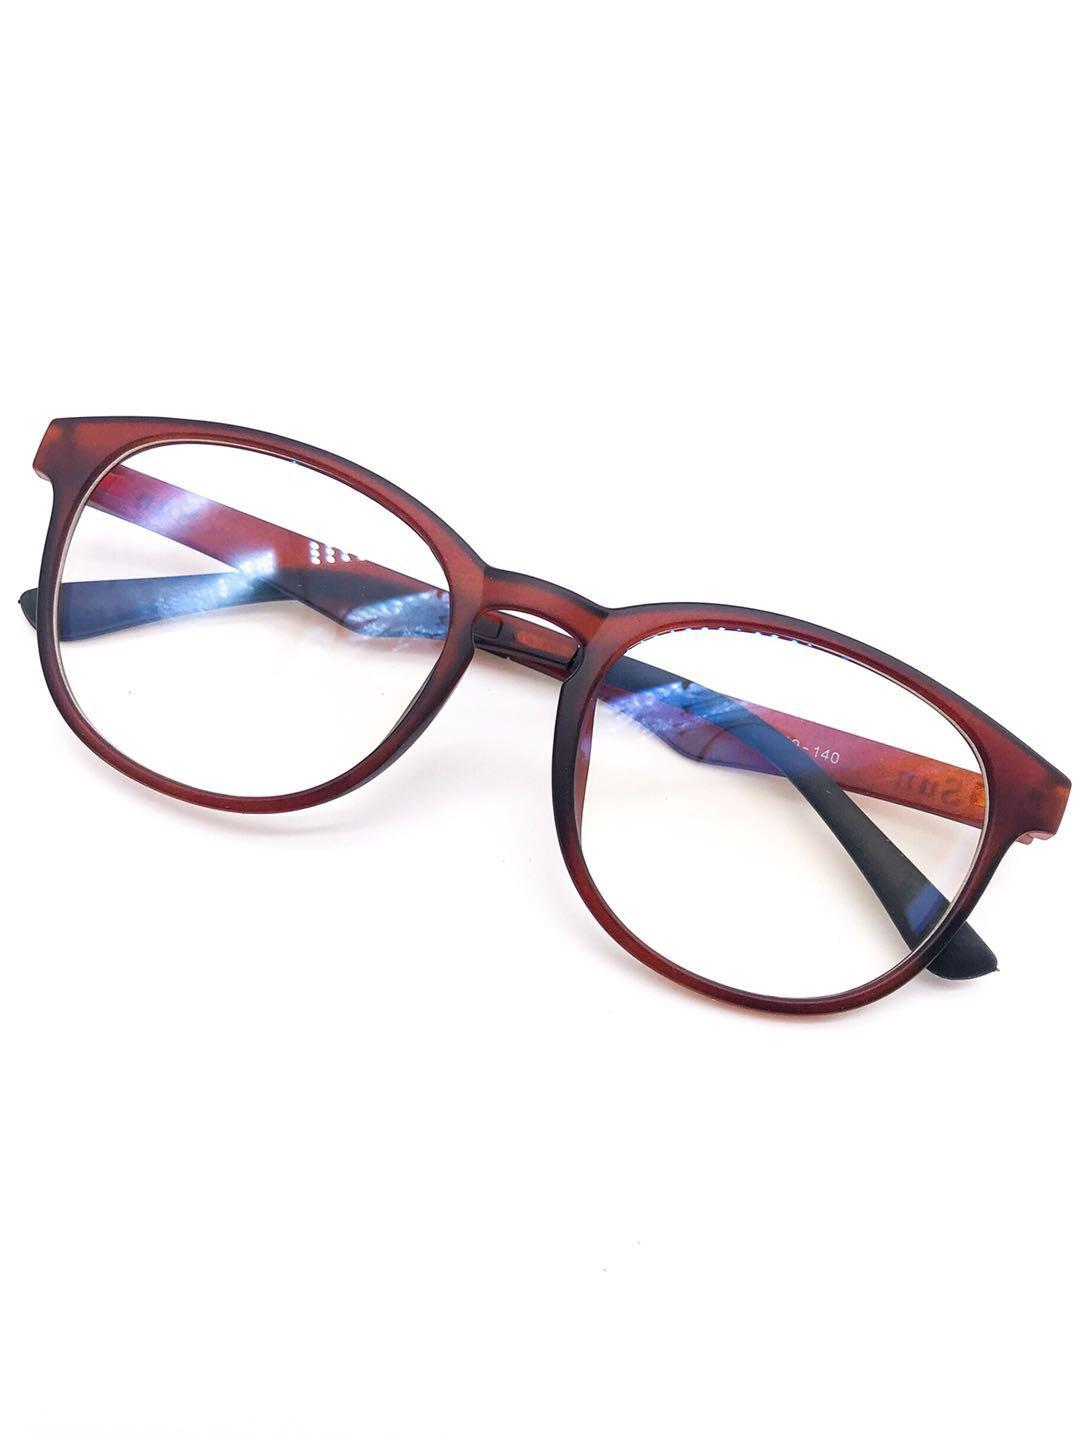 c78f87041 Glasses for sale - Eyewear Online Deals & Prices in Philippines ...